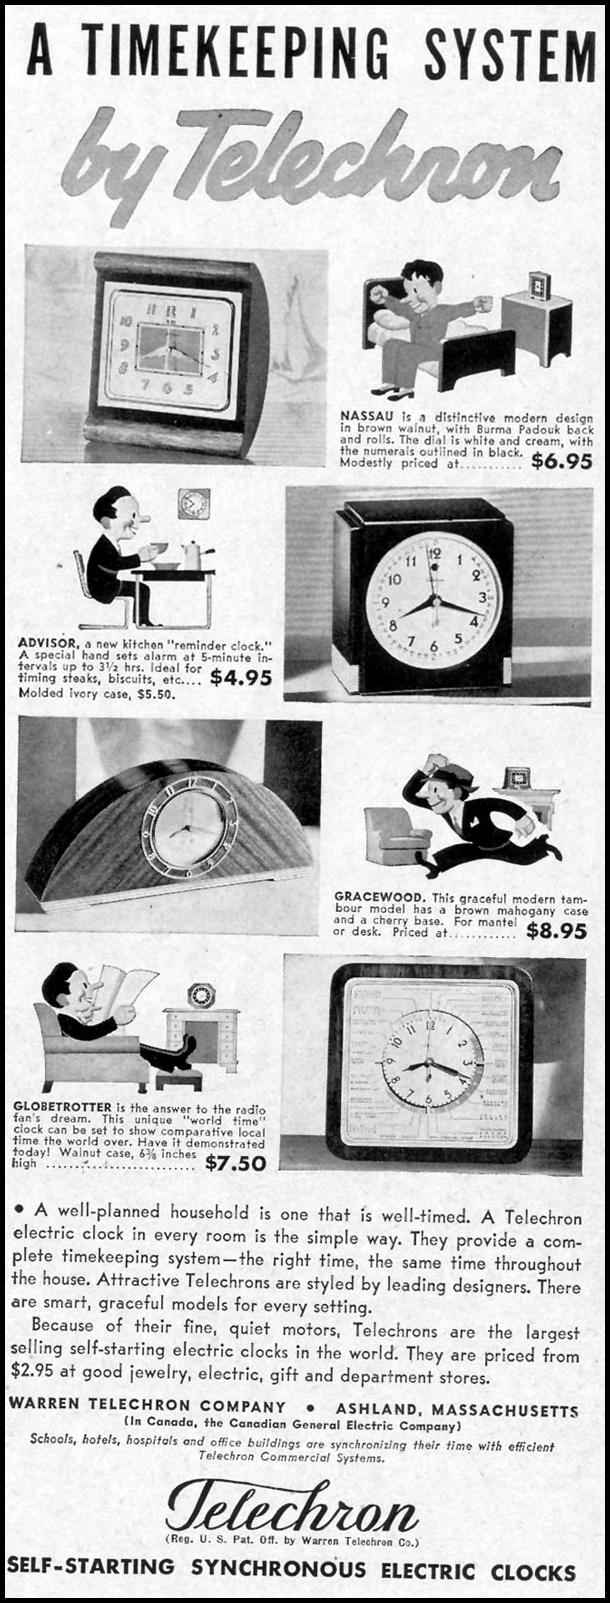 TELECHRON ELECTRIC CLOCKS LIFE 09/13/1937 p. 81